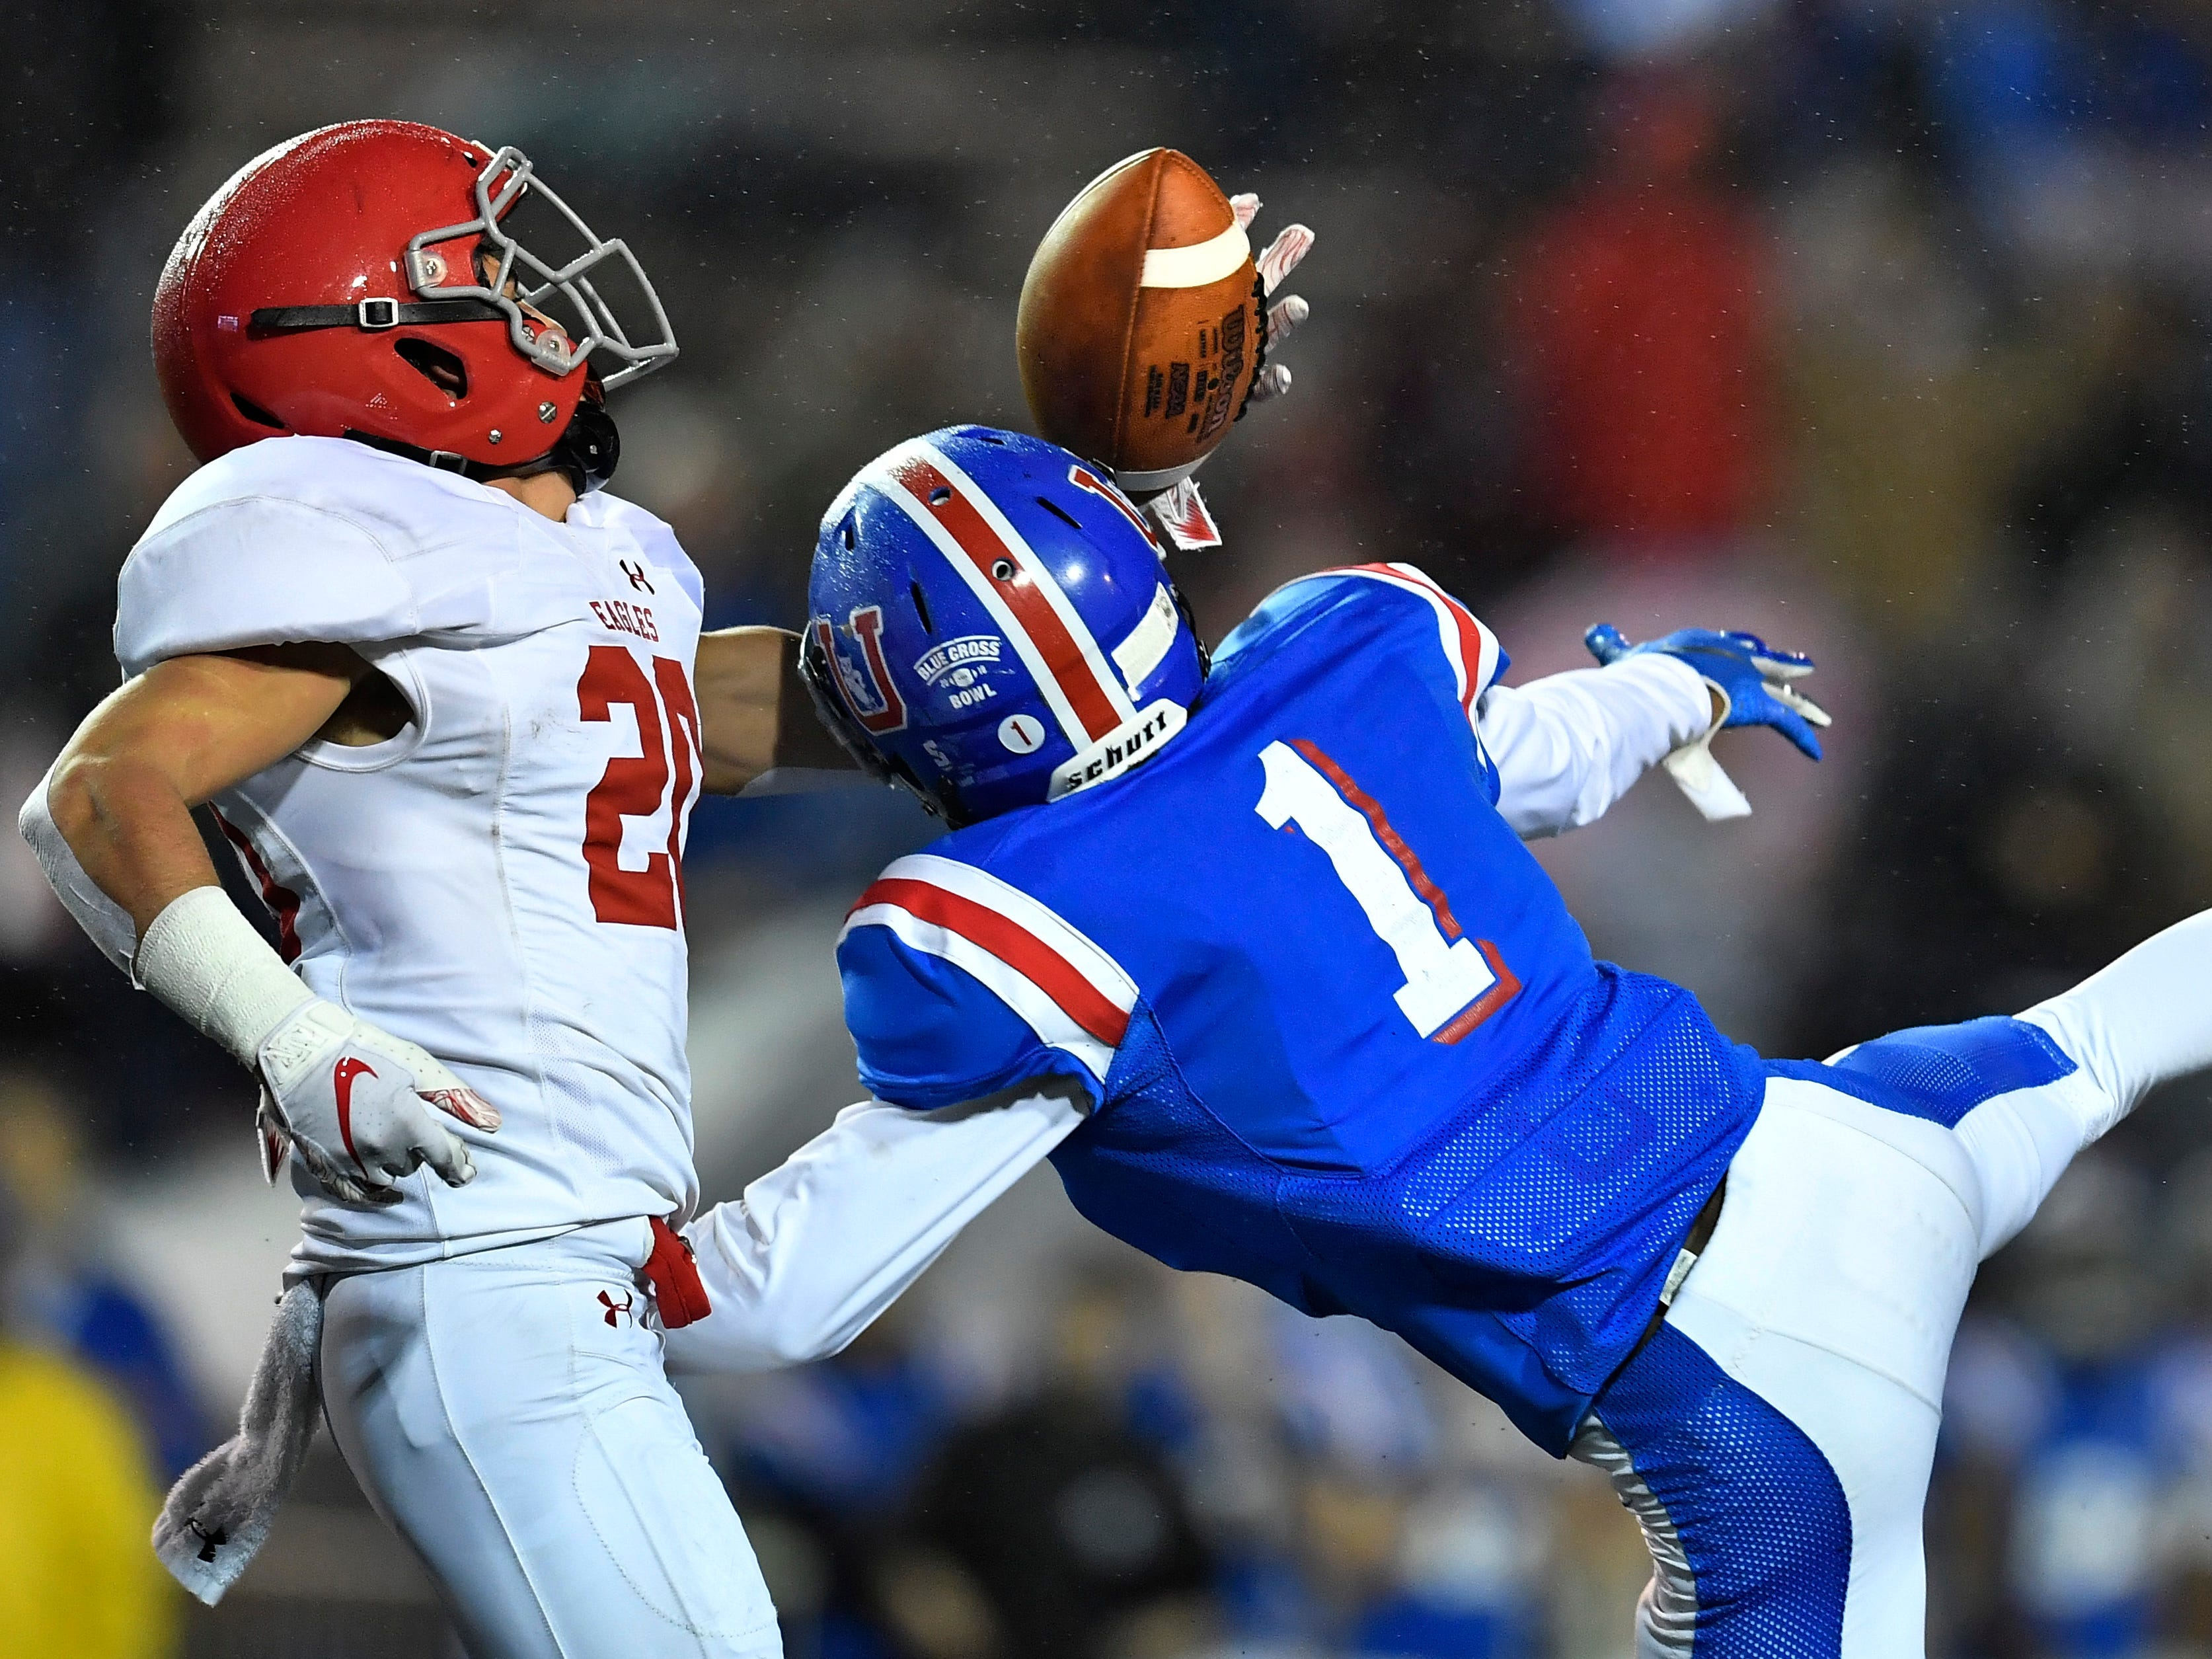 Brentwood Acad. wide receiver Preston Sagan (20) pulls in a touchdown catch defended by Memphis Univ. School defensive back Dekari Scott (1) in the second quarter at the Division II-AAA BlueCross Bowl state championship at Tennessee Tech's Tucker Stadium in Cookeville, Tenn., on Friday, Nov. 30, 2018.